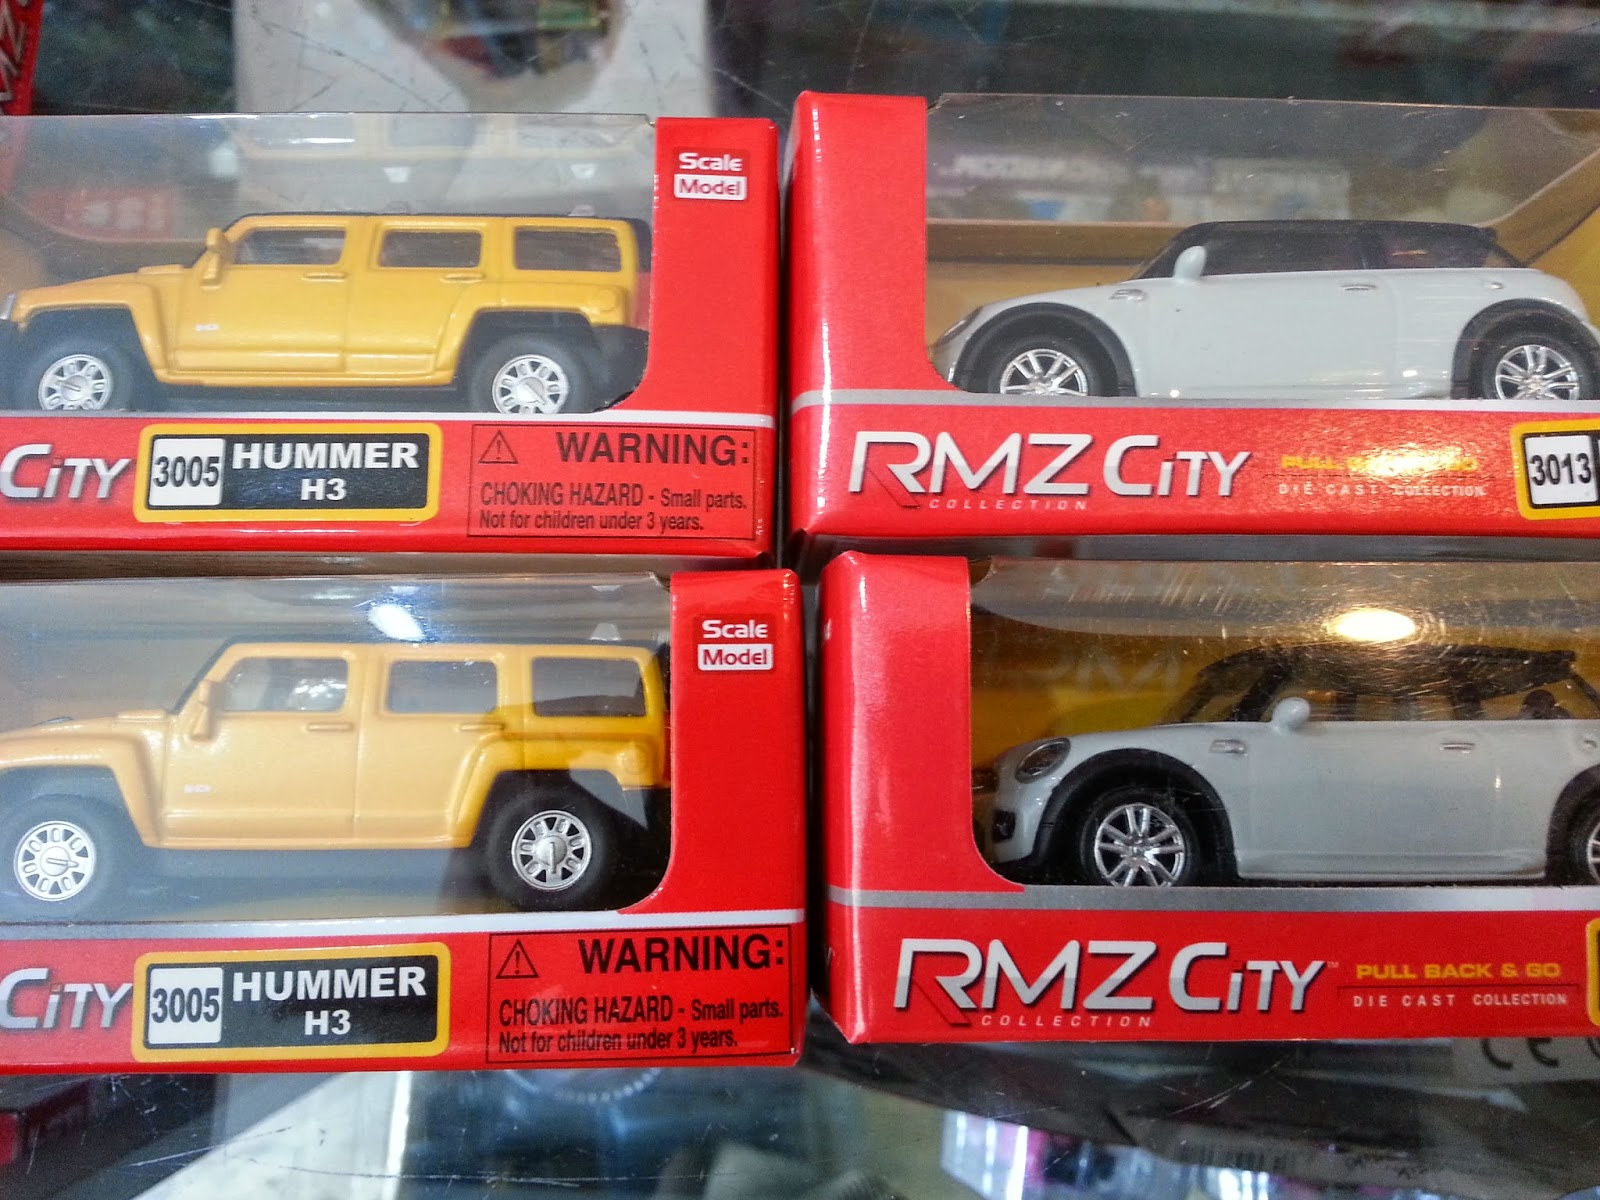 RMZ City Diecast Collections